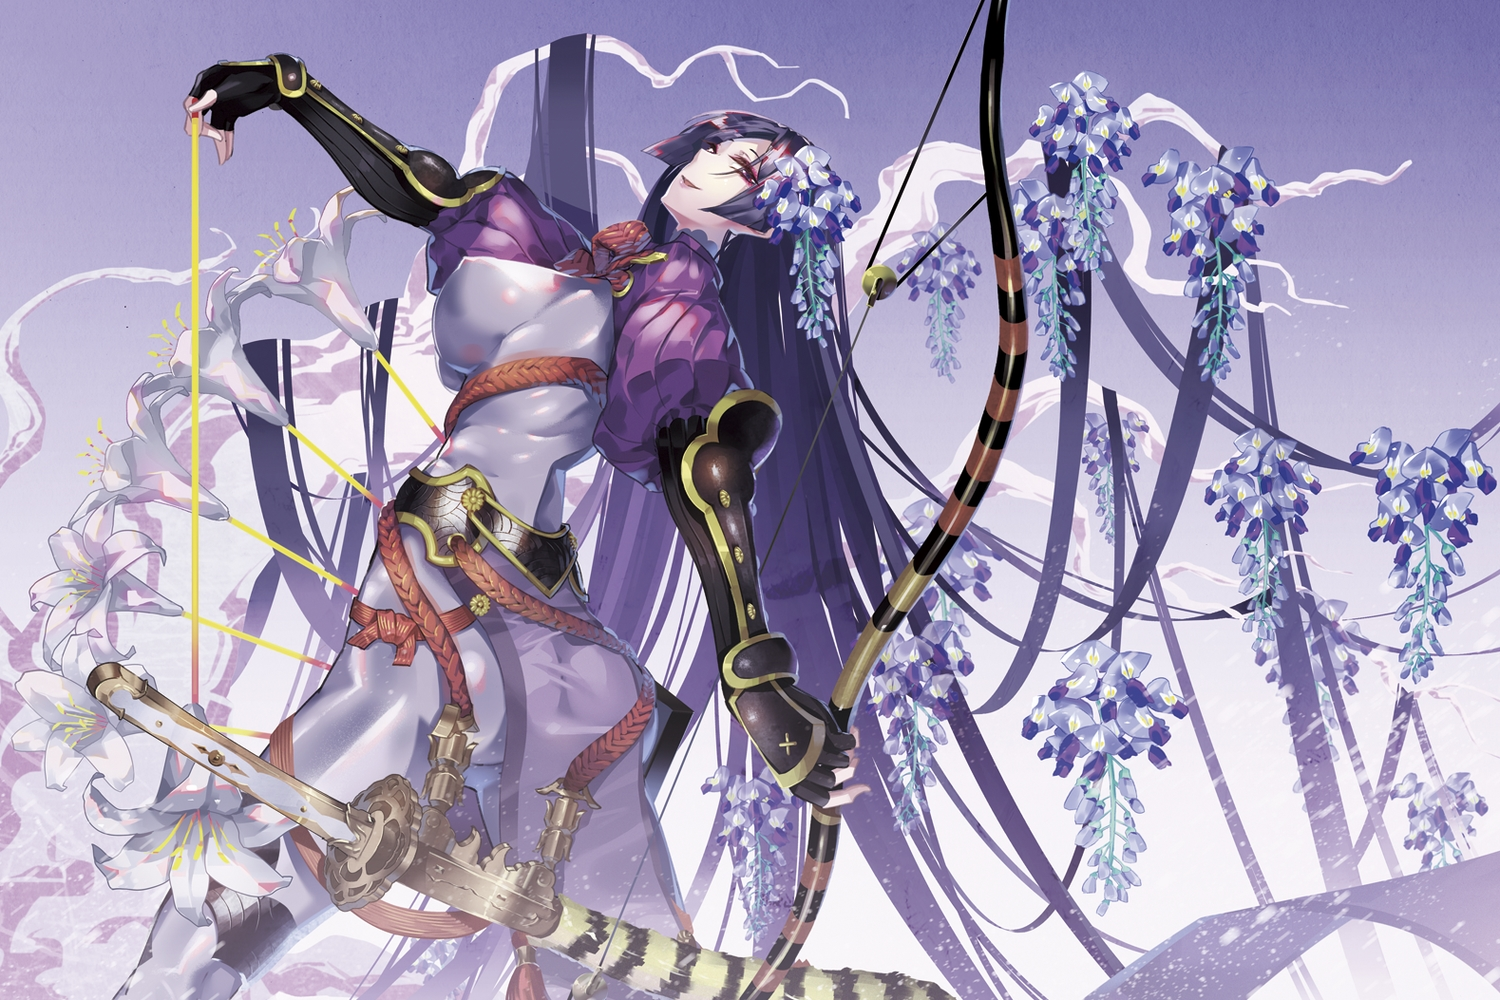 armor ass bodysuit bow_(weapon) breasts erect_nipples fate/grand_order fate_(series) flowers gloves gradient katana long_hair minamoto_no_yorimitsu_(fate) purple_eyes purple_hair skintight sword tsurukame weapon